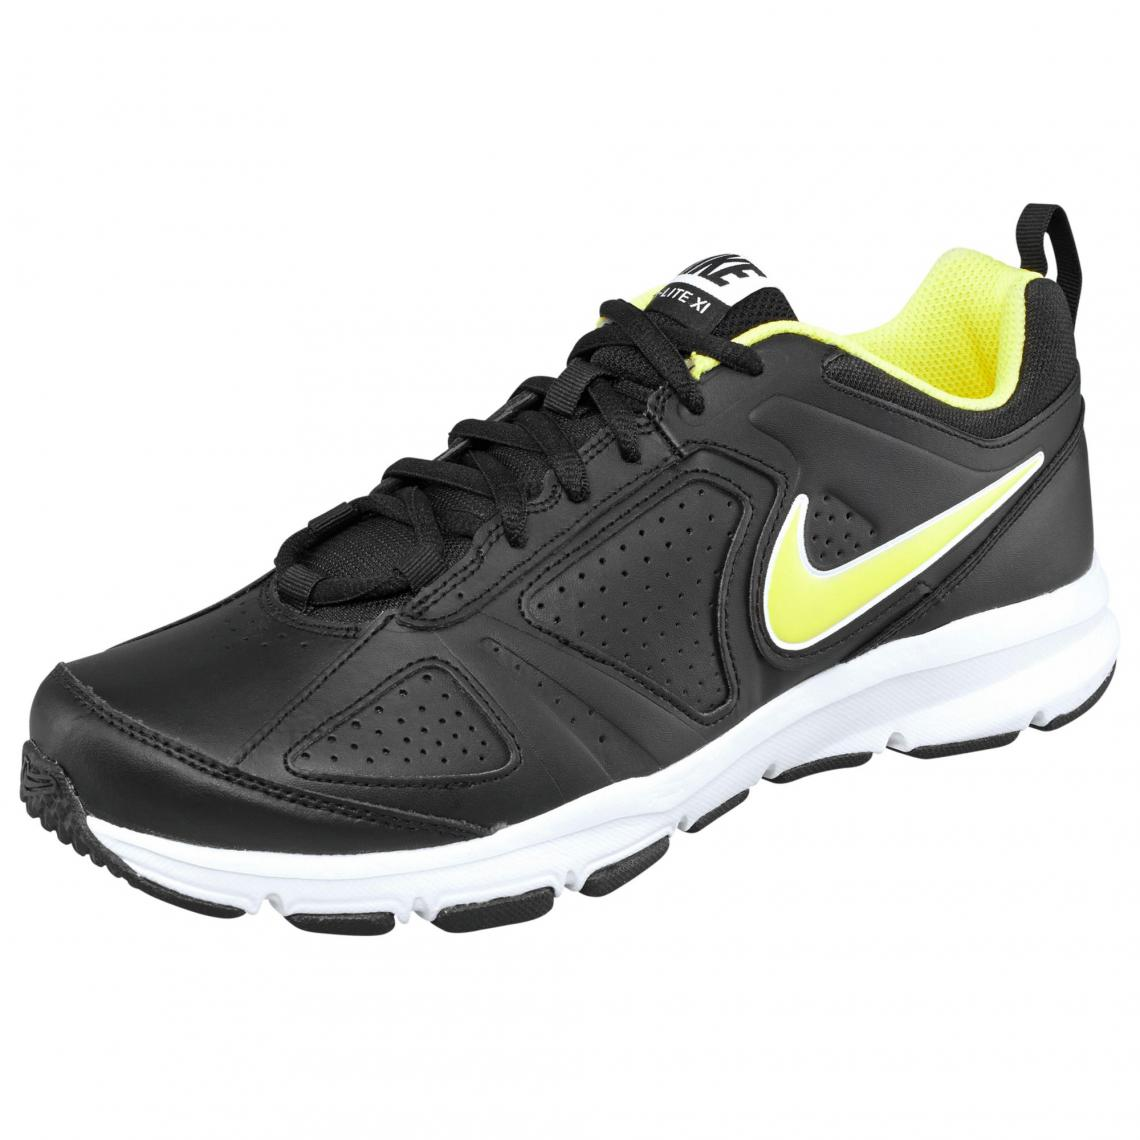 nike chaussures sportswear t lite xi homme